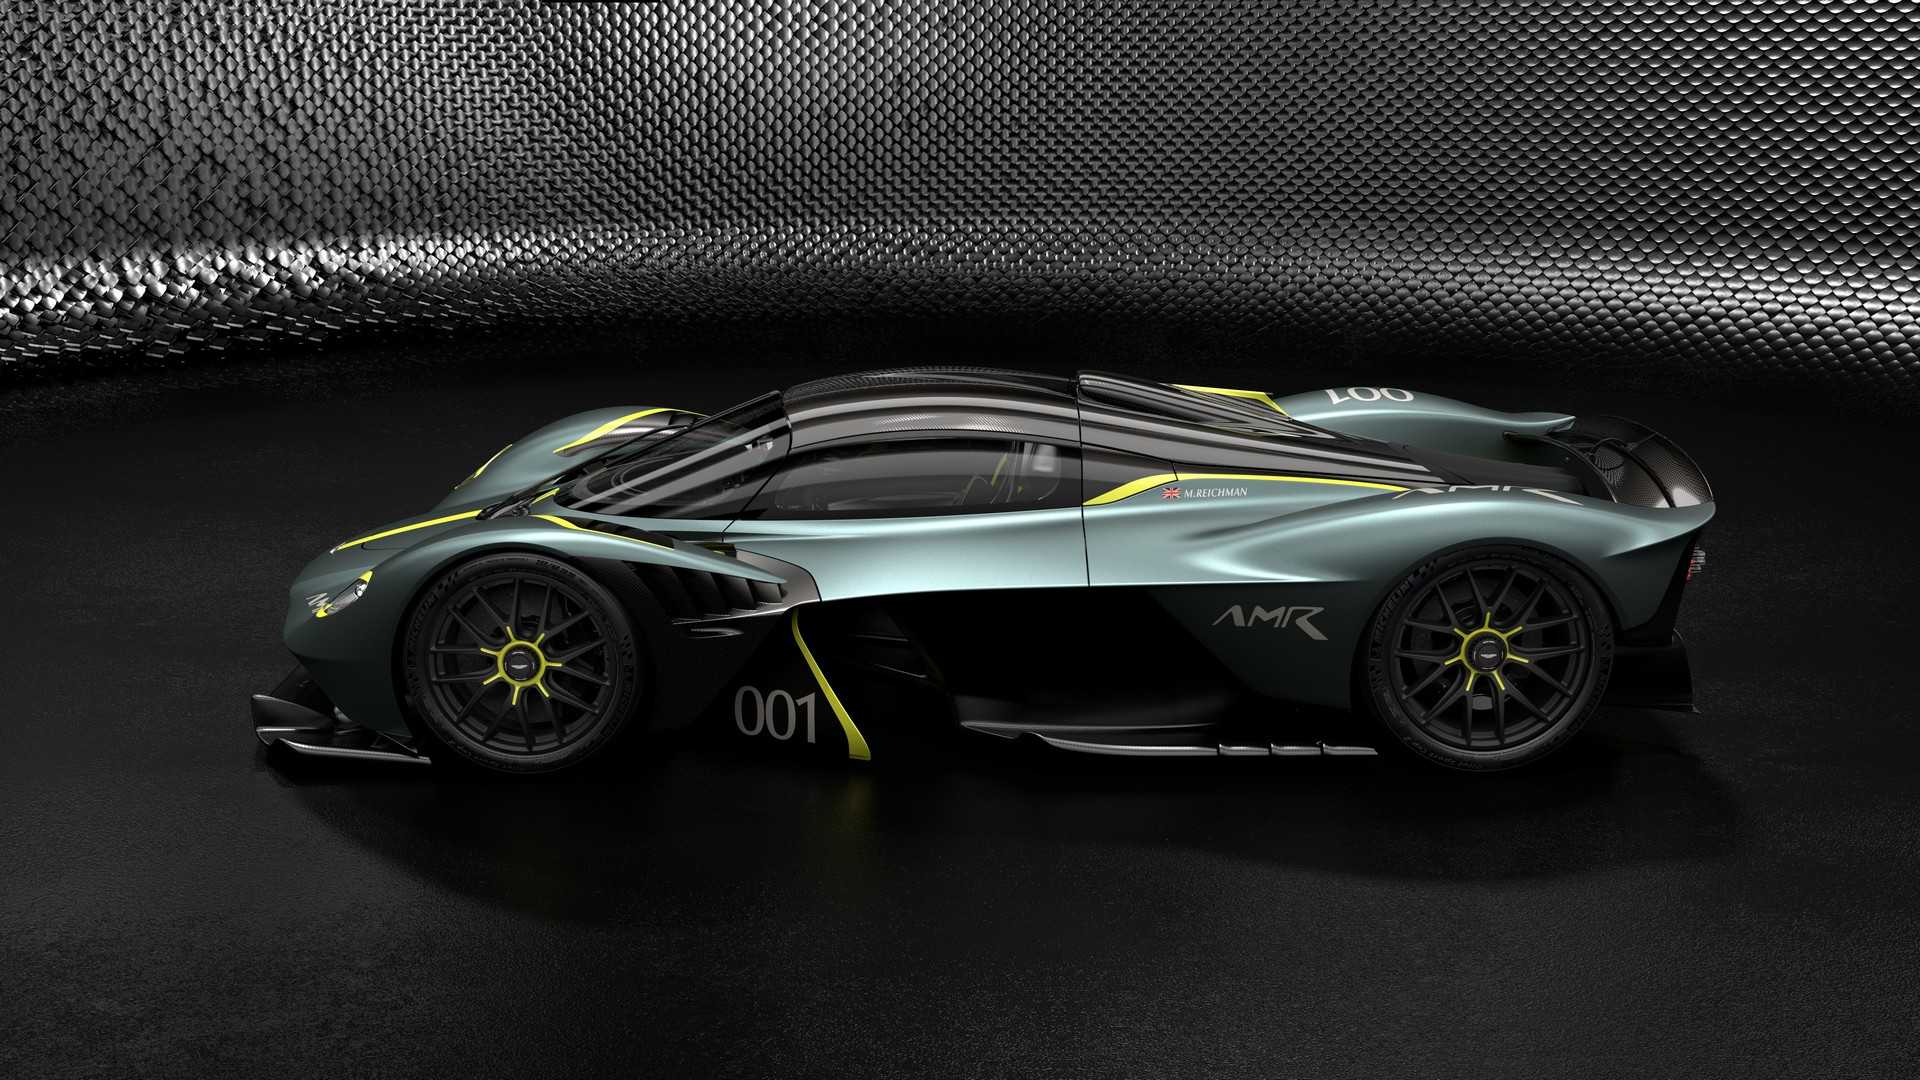 aston martin valkyrie levels up with amr track performance pack